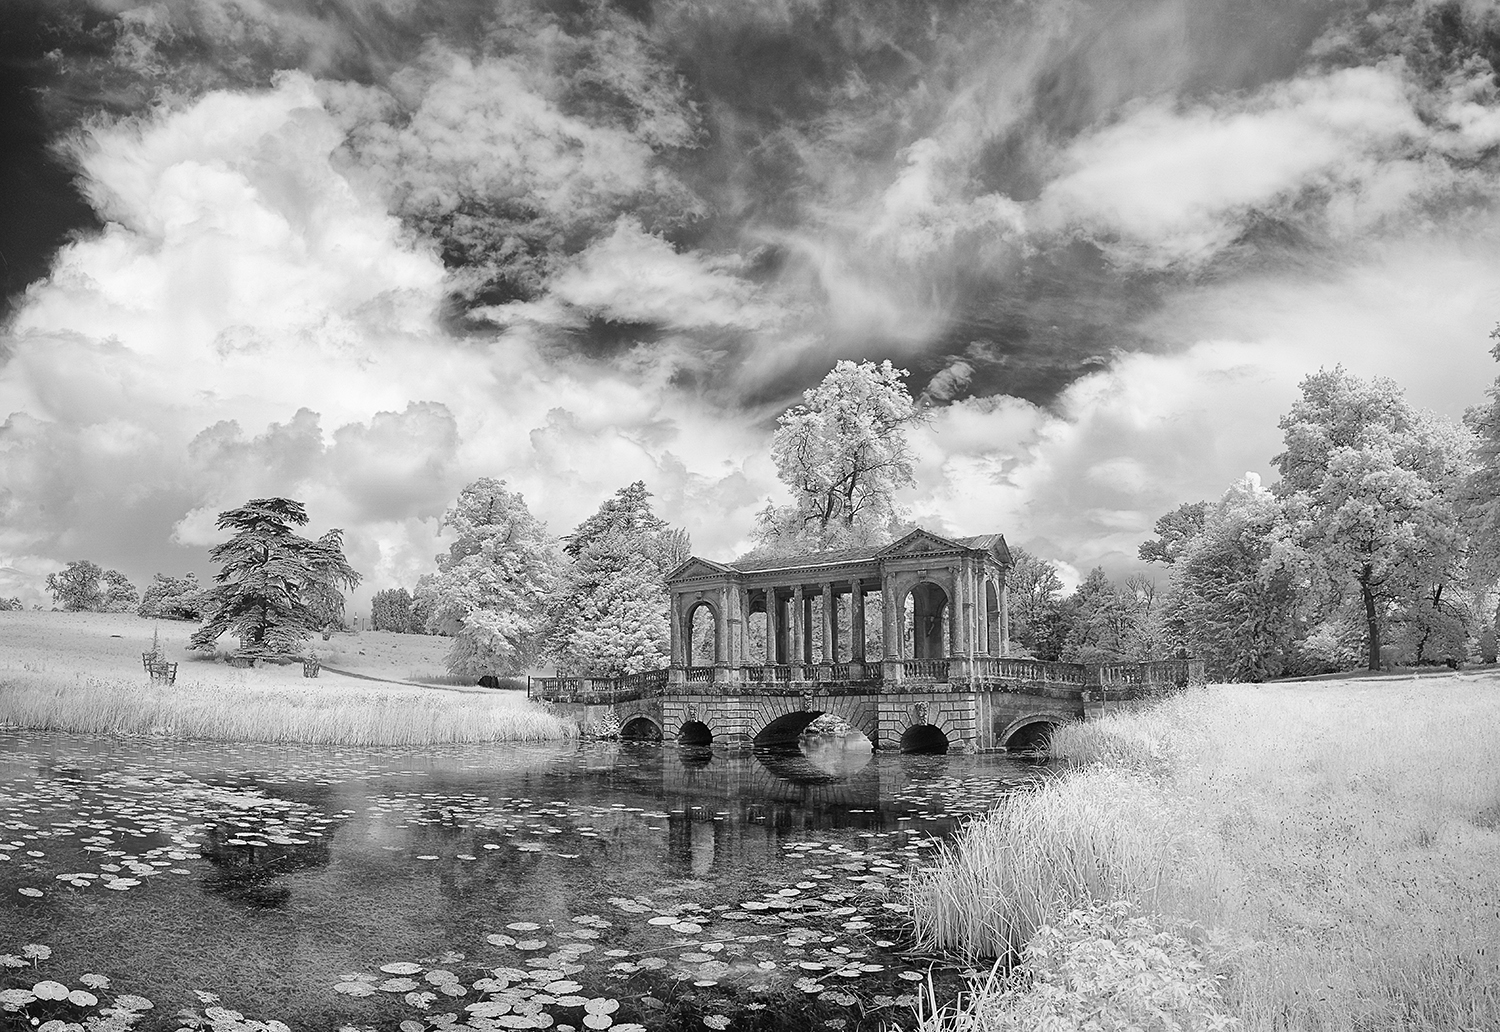 Palladian Bridge 2722 - 2724